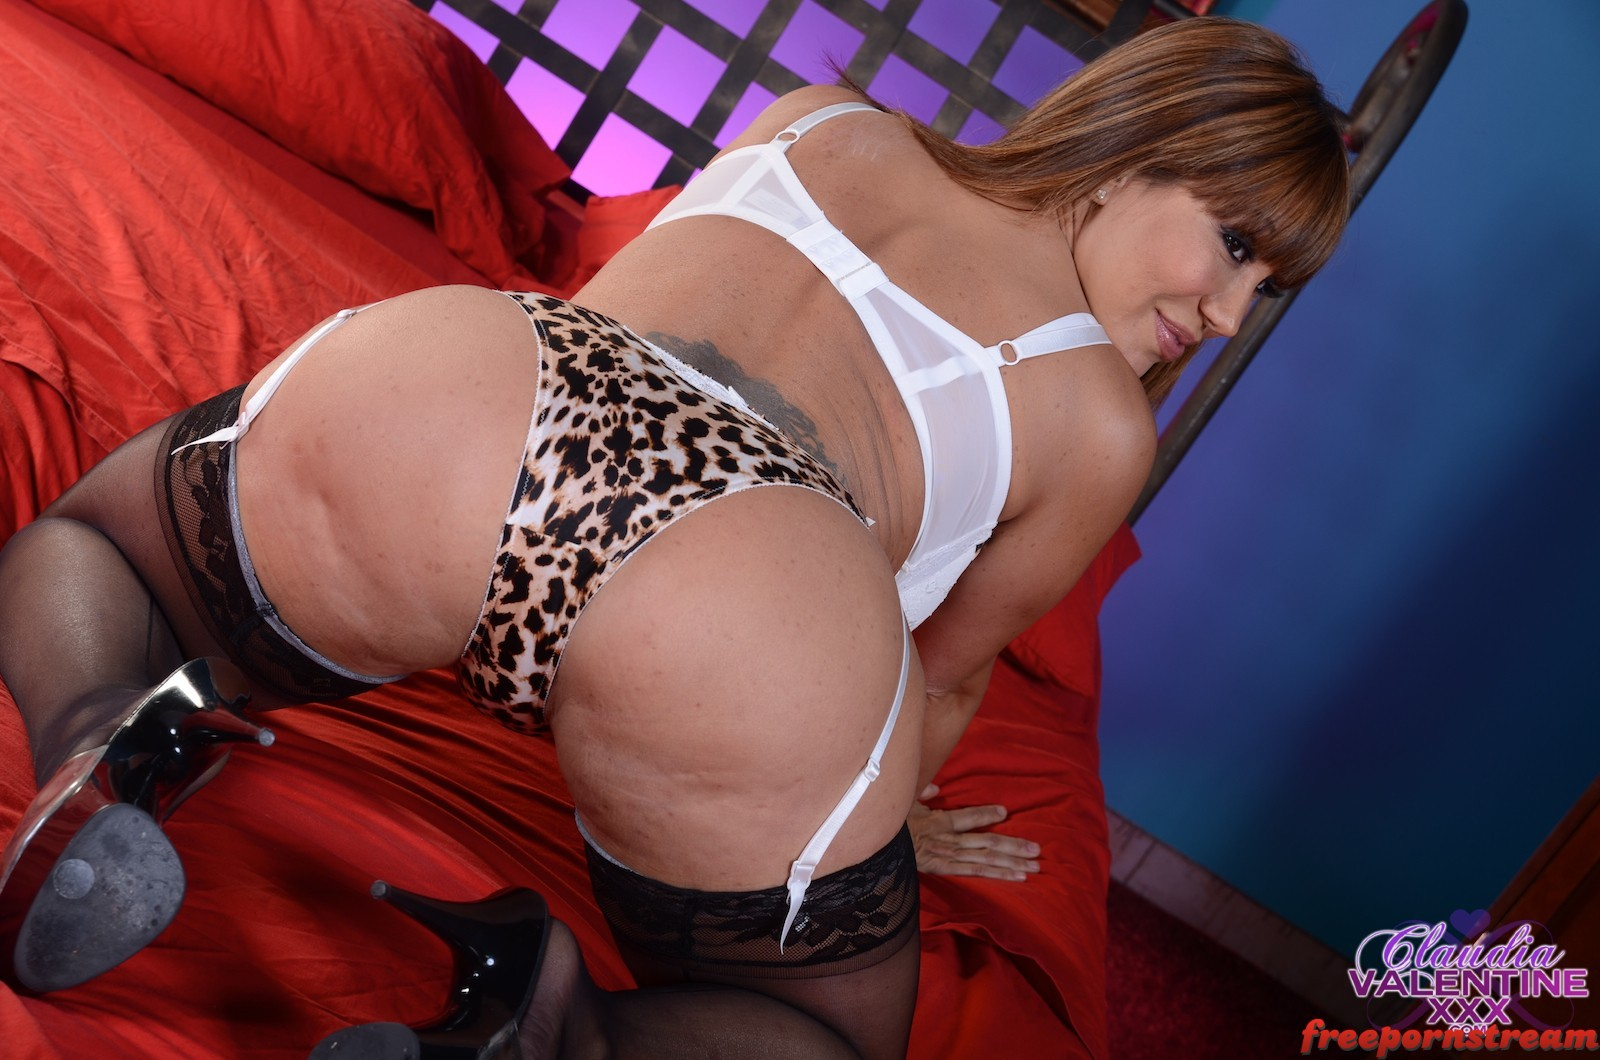 Ava Devine Gold Tube Porn swingingpornstars – dso jailhouse fuck part 2 – cam 1